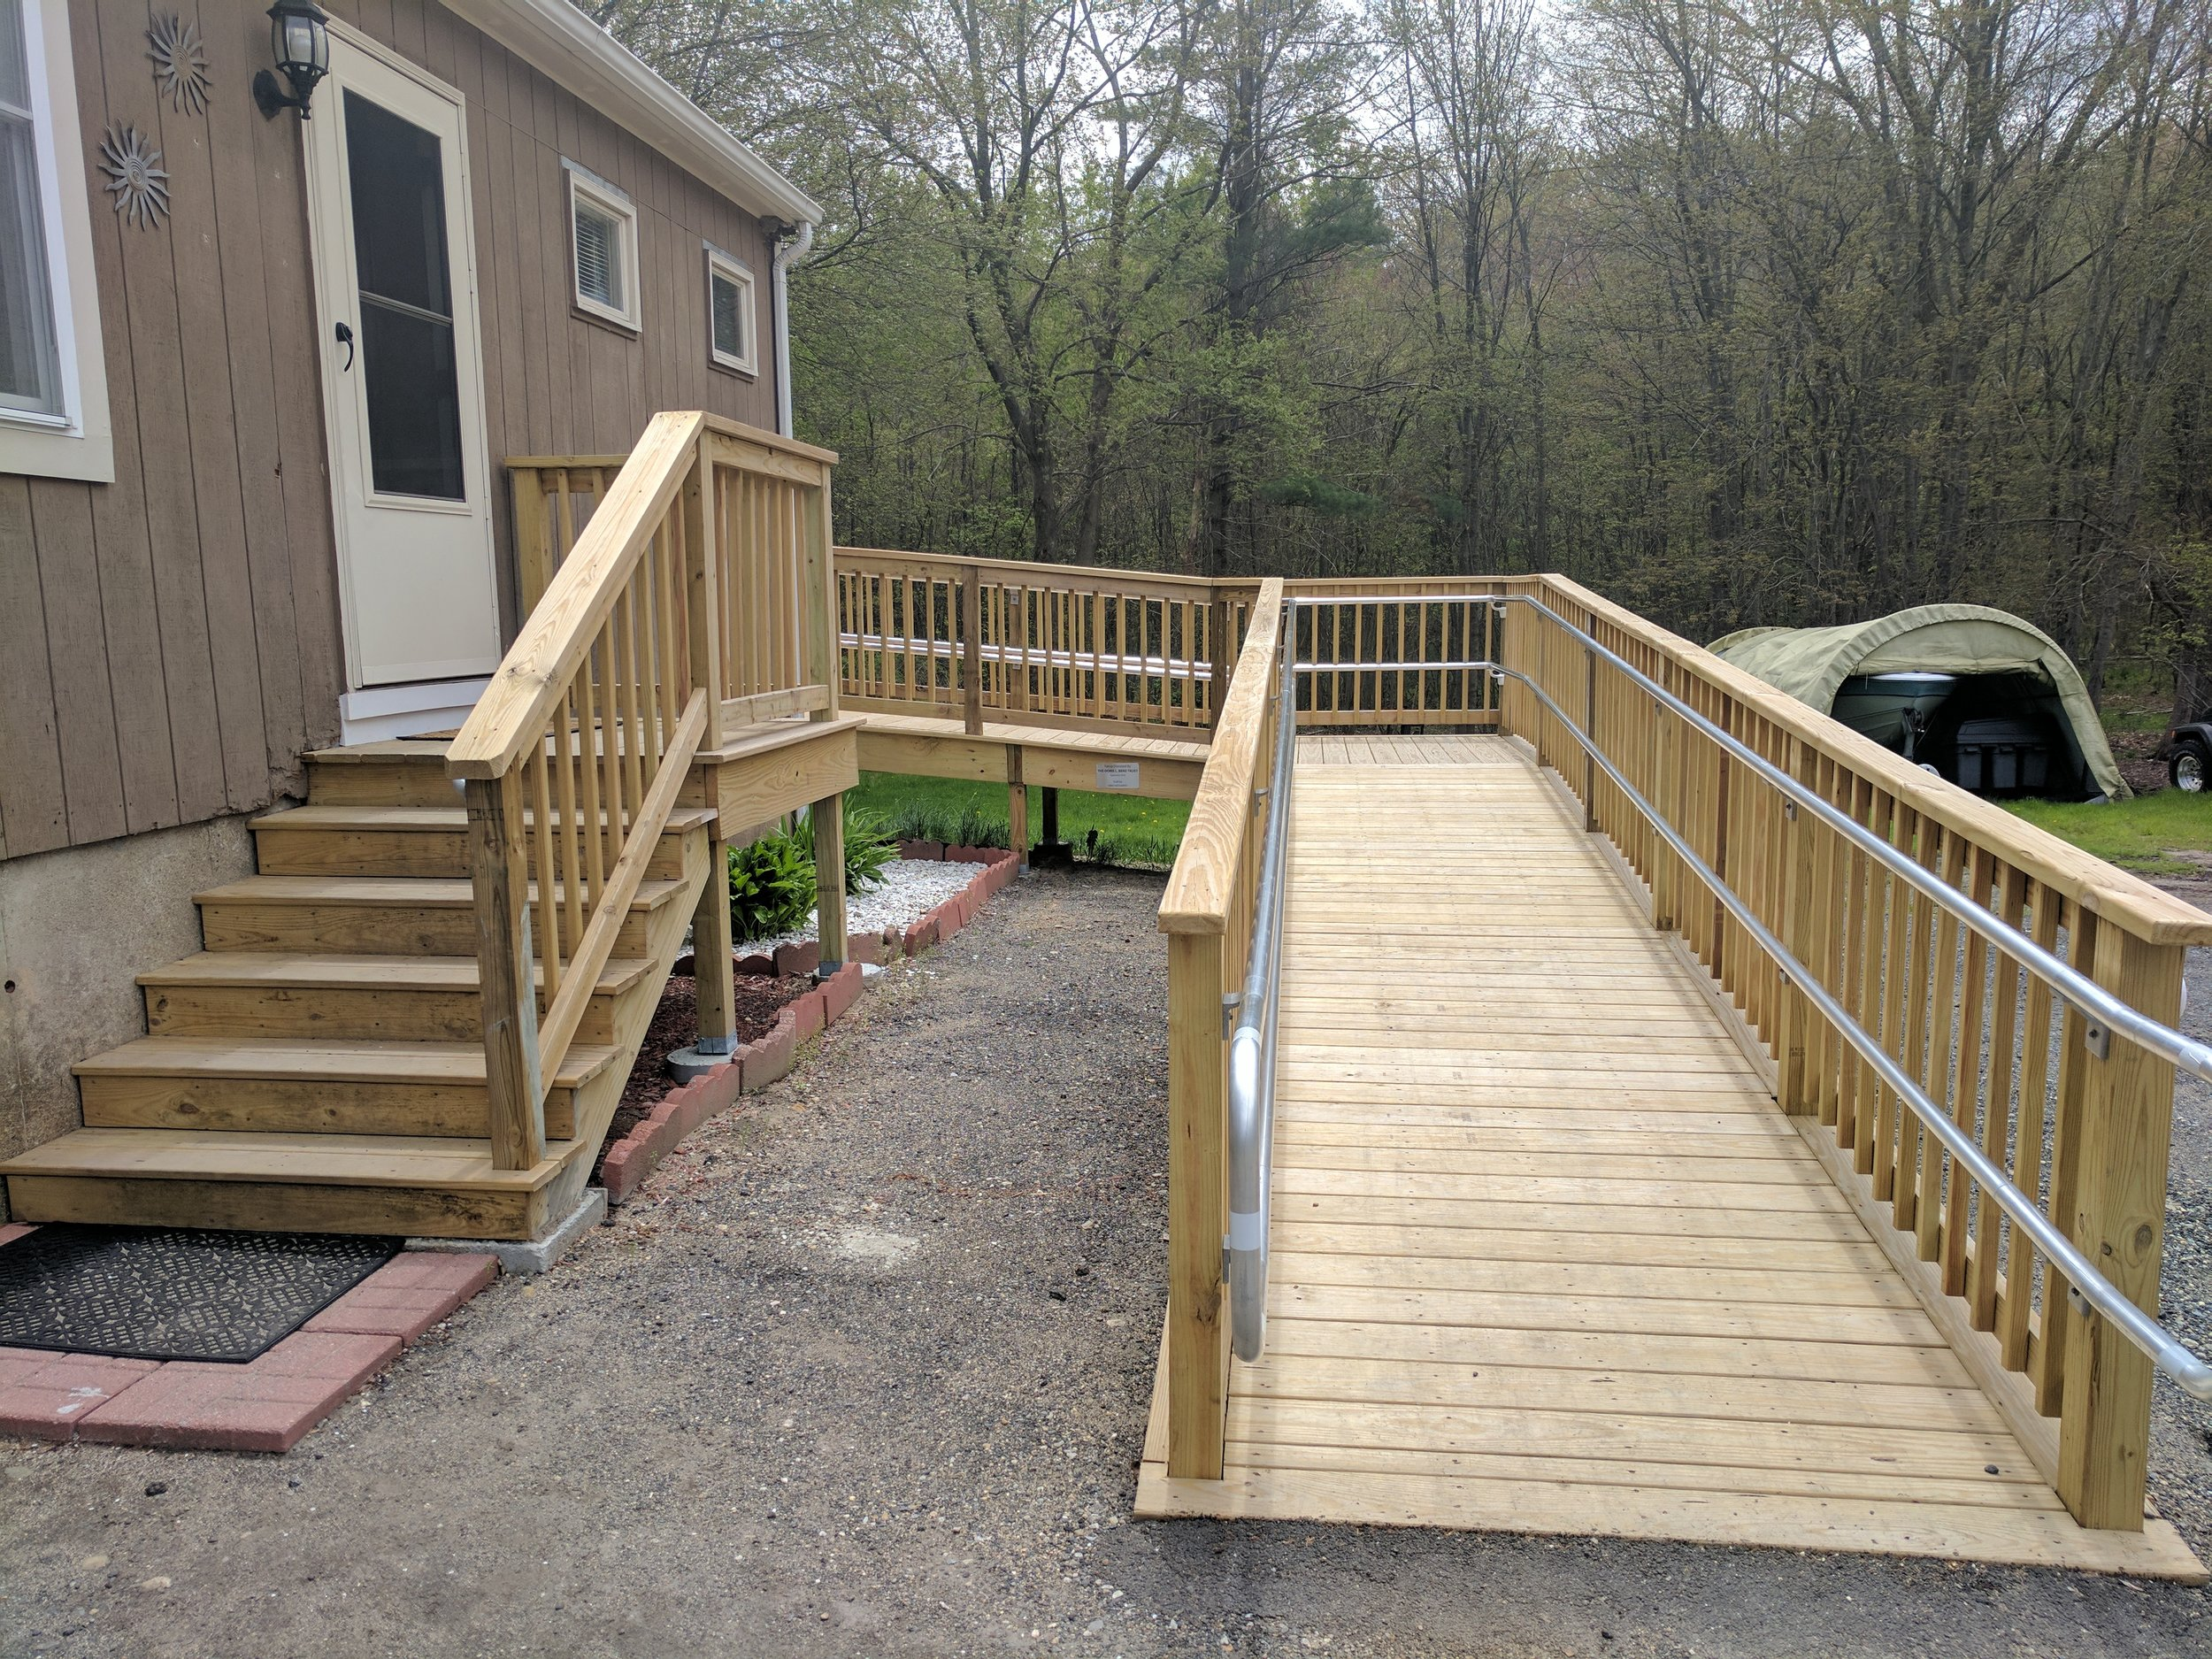 Our accessible wheelchair ramp donated by the Doris L. Benz Trust, built by Mike Hathaway